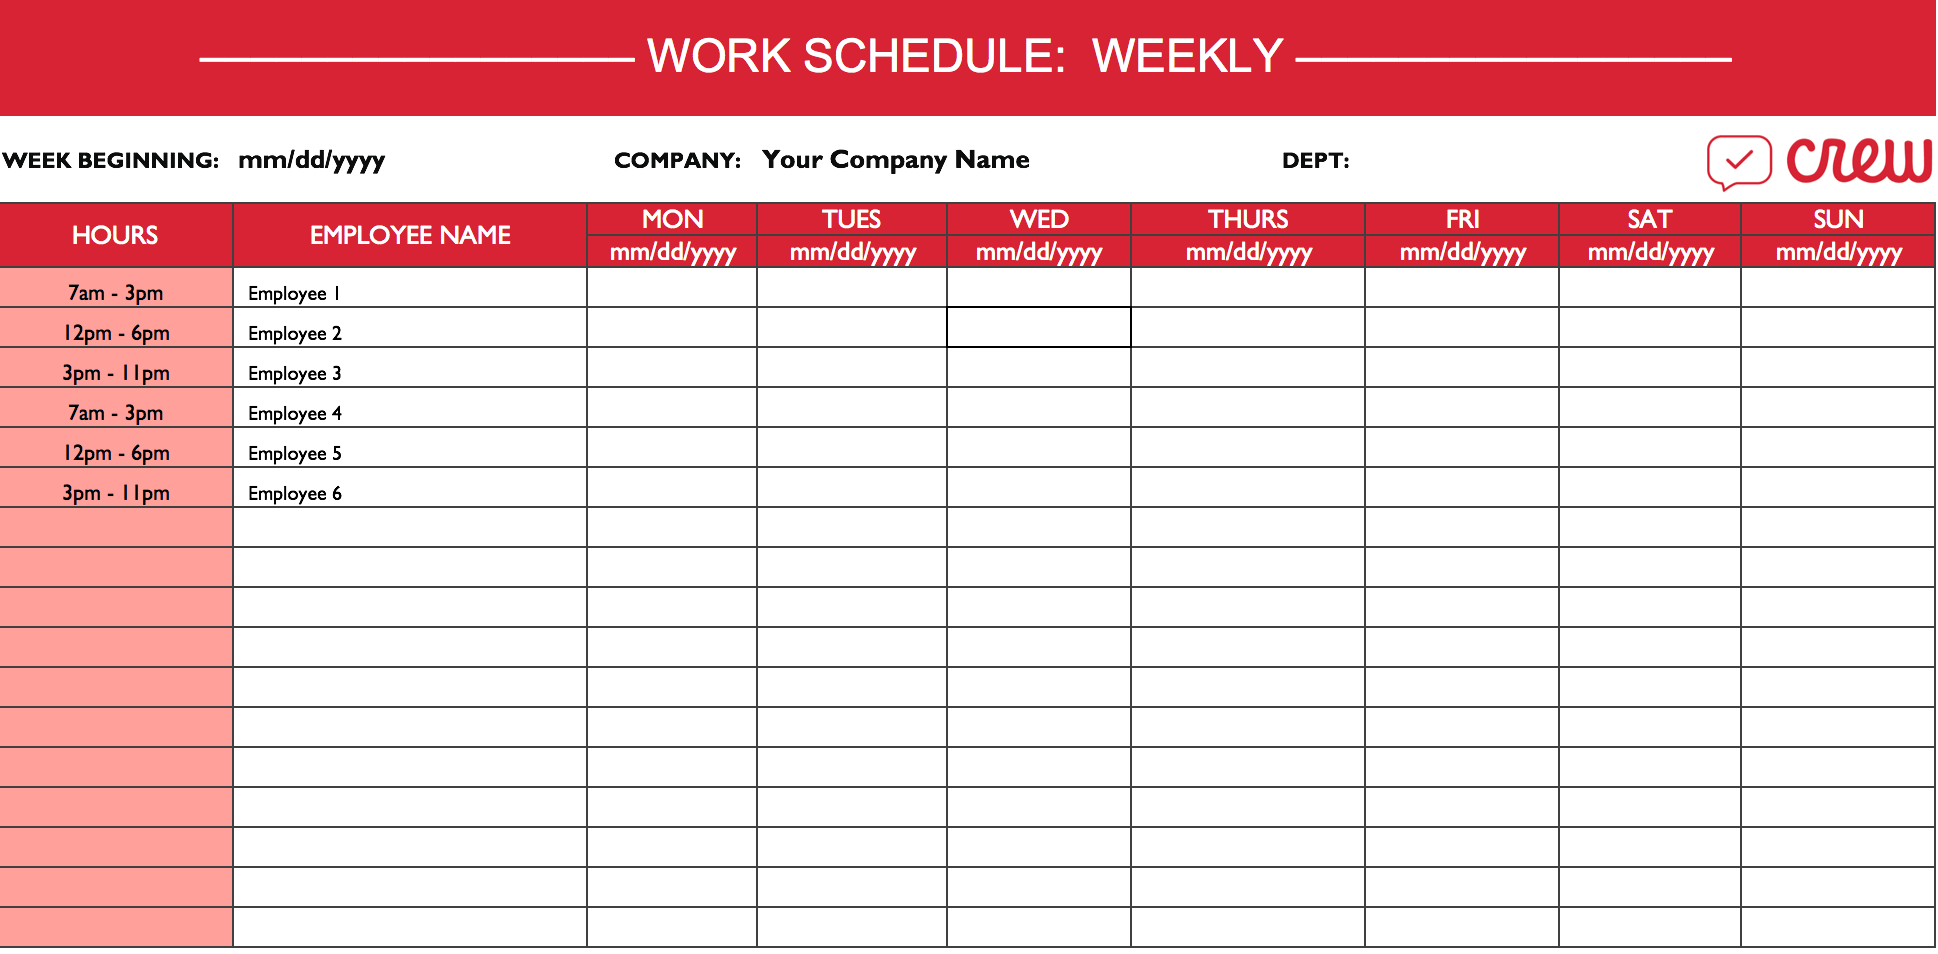 So, this document is an admixture of aesthetics and efficacy. Shift Work Calendar Template Bicim